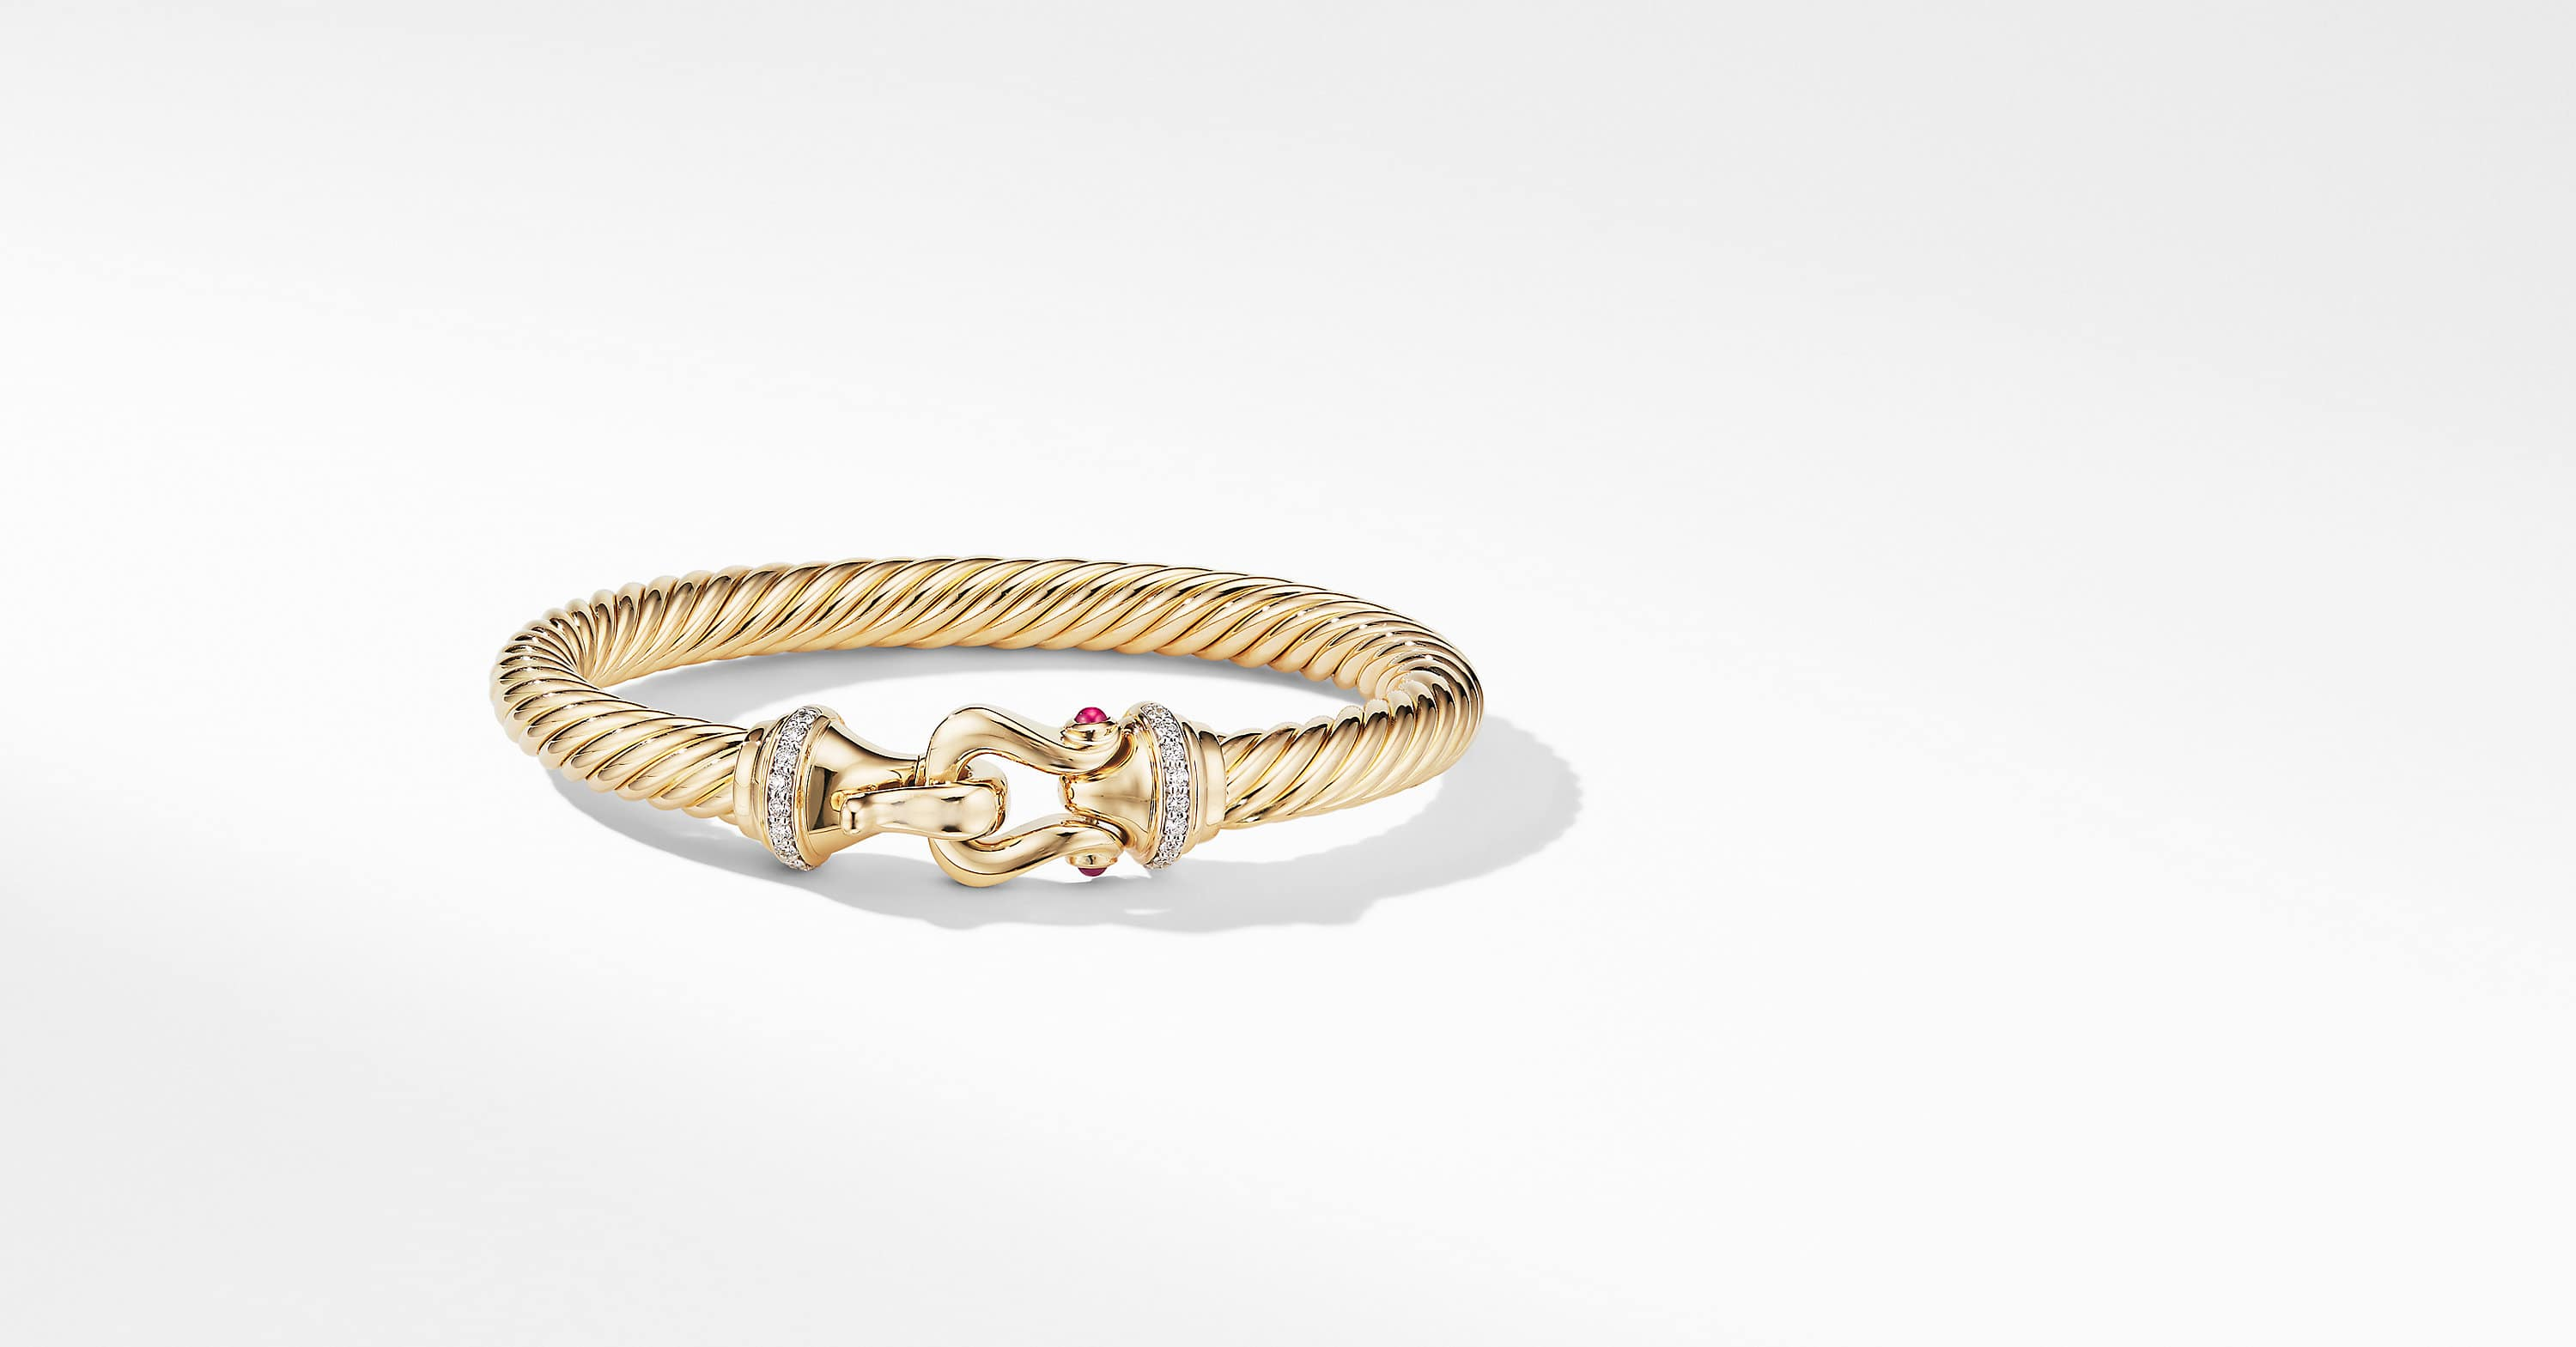 Buckle Bracelet in 18K Yellow Gold with Diamonds, 7mm